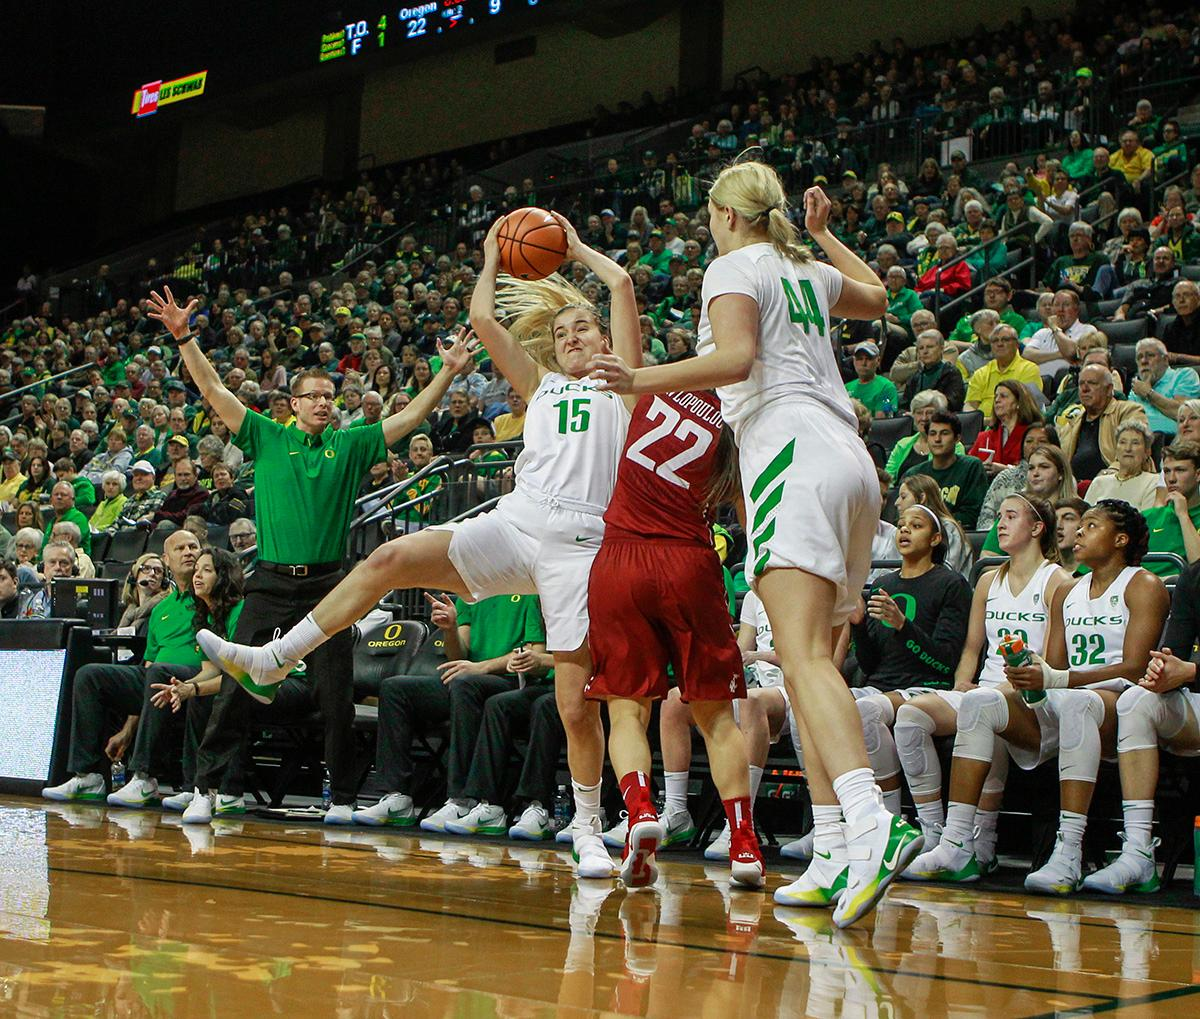 Oregon Ducks Anneli Maley (#15) pulls the ball away from Washington State University Cougars Pinelopi Pavlopoulou (#22). In their first conference basketball game of the season, the Oregon Women Ducks defeated the Washington State Cougars 89-56 in Matt Knight Arena Saturday afternoon. Oregon's Ruthy Hebard ran up 25 points with 10 rebounds. Sabrina Ionescu shot 25 points with five three-pointers and three rebounds. Lexi Bando added 18 points, with four three-pointers and pulled down three rebounds. Satou Sabally ended the game with 14 points with one three-pointer and two rebounds. The Ducks are now 12-2 overall with 1-0 in conference and the Cougars stand at 7-6 overall and 0-1 in conference play. The Oregon Women Ducks next play the University of Washington Huskies at 1:00 pm on Sunday. Photo by Rhianna Gelhart, Oregon News Lab